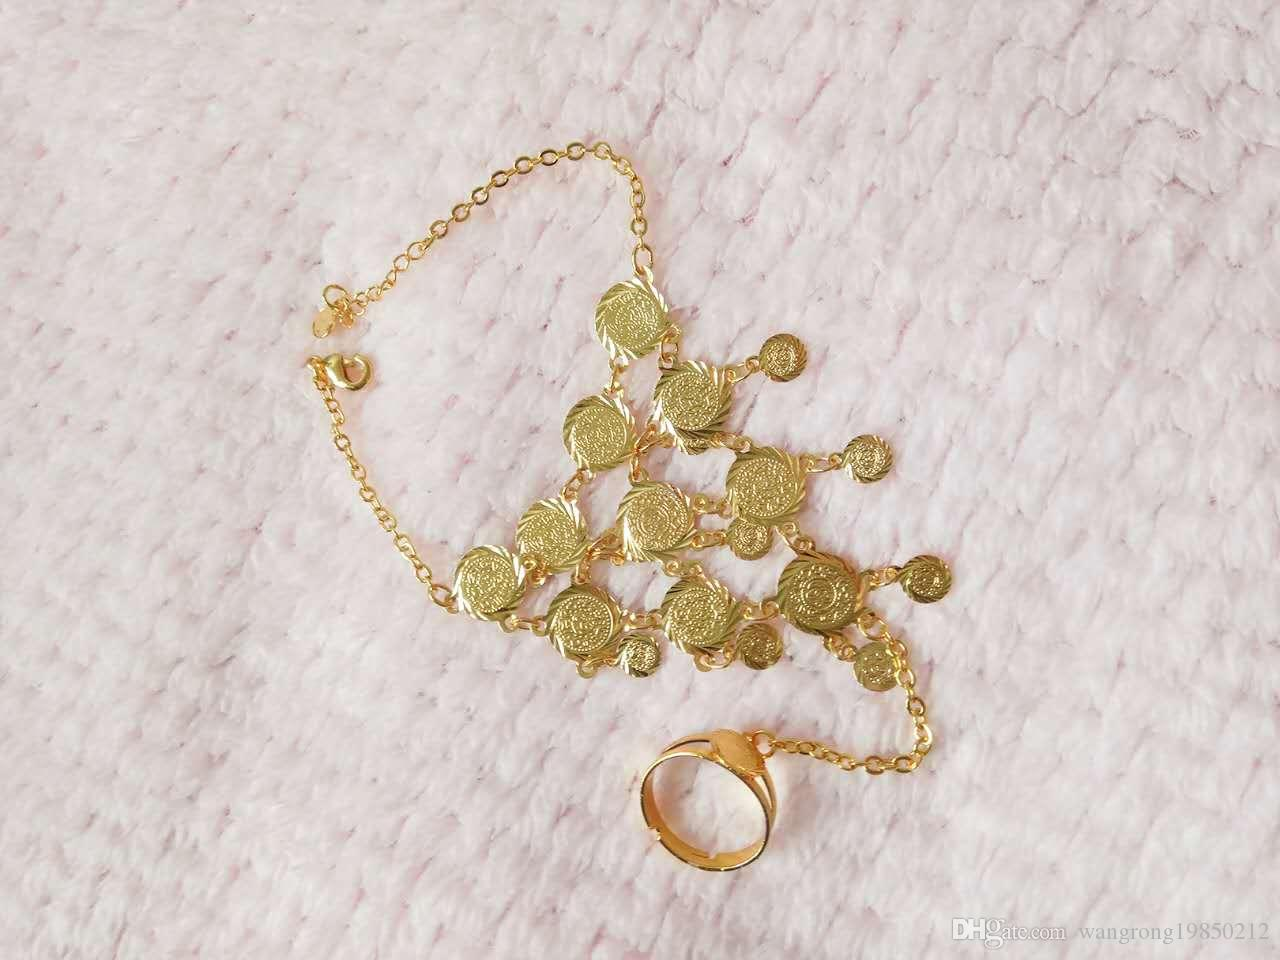 18 k gold plating bracelets with finger ring for women and extender chain one styles